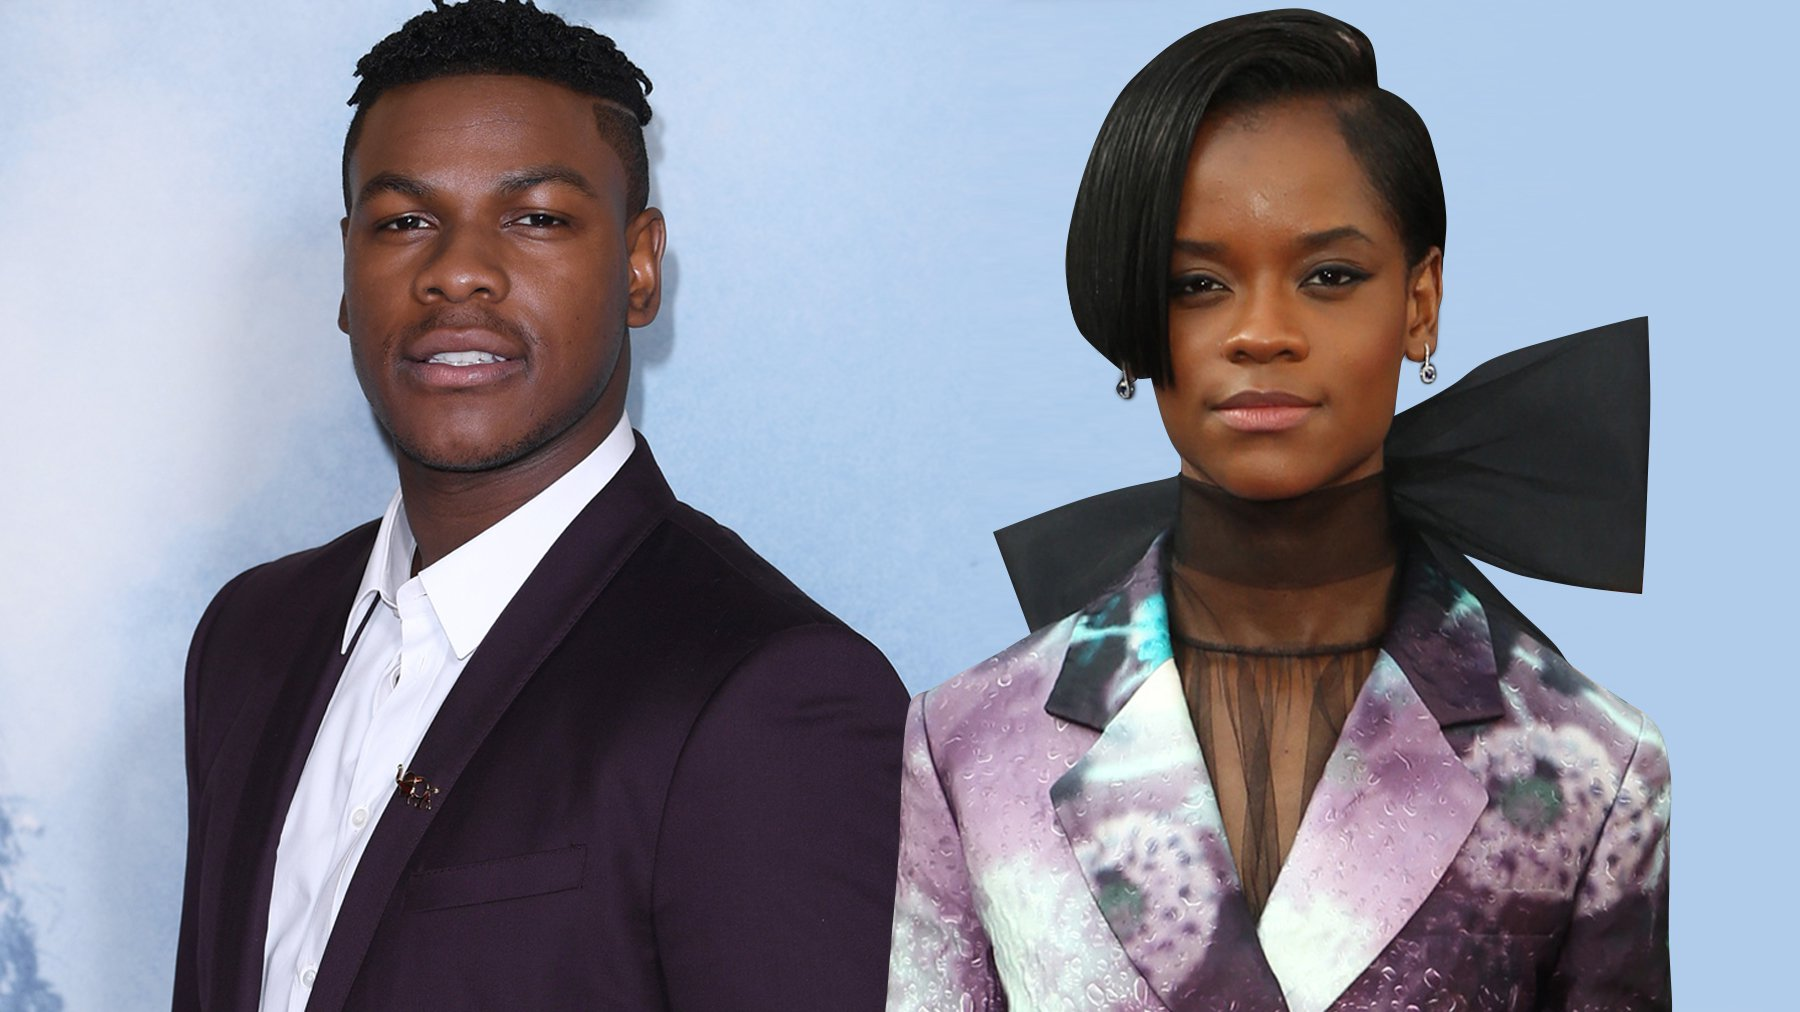 Here's why Letitia Wright and John Boyega are more than 'black British and cheap' actors, insists Hollywood producer